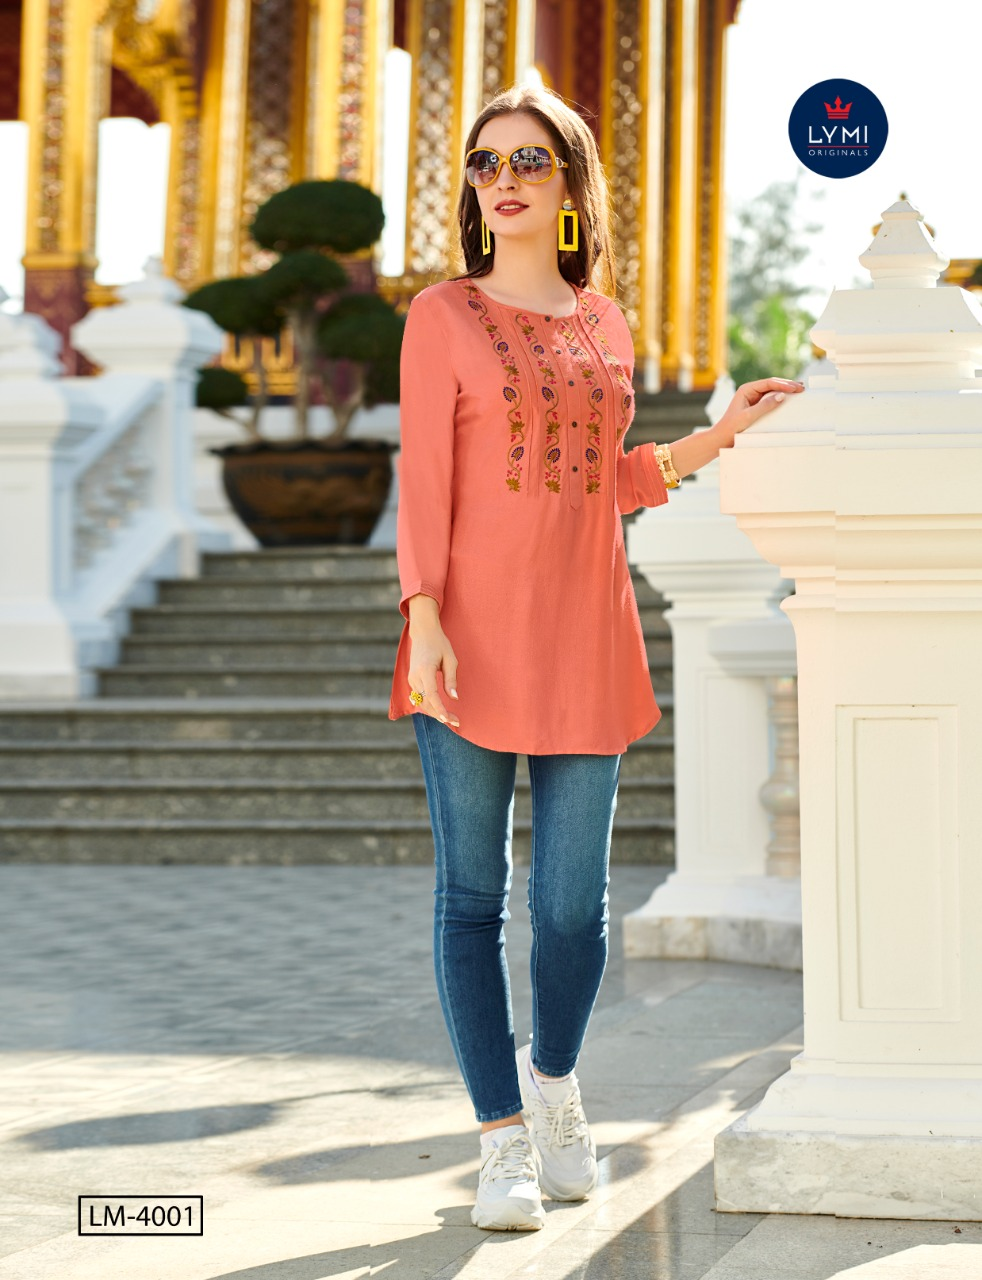 Kessi Fabrics Lymi Canon Viscose Moss With Embroidery Work Readymade Short Kurti Tops At Wholesale Rate